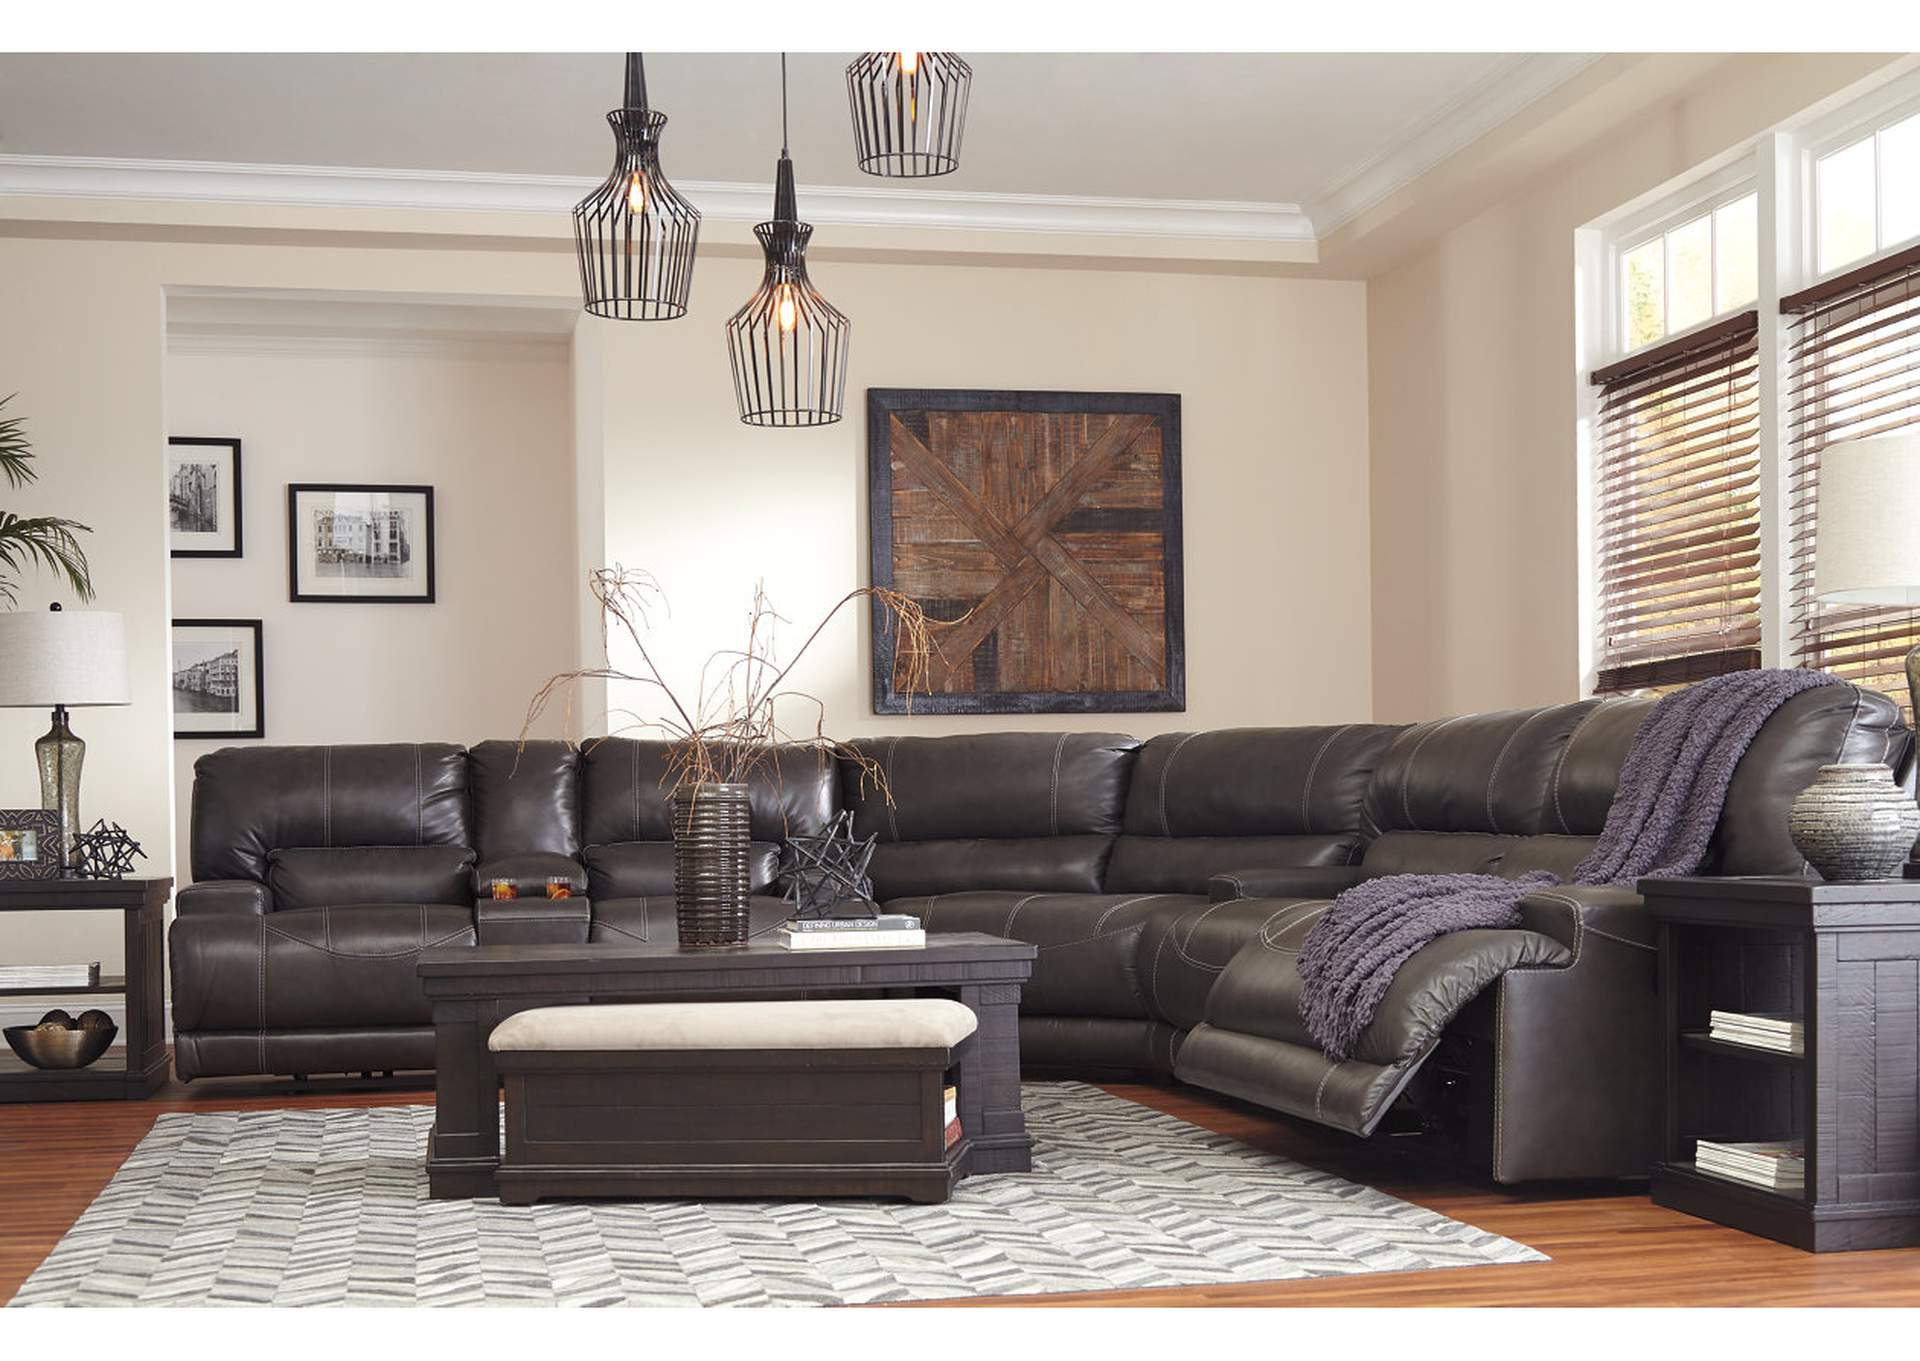 McCaskill Gray 2 Seat Reclining Sofa,Signature Design By Ashley